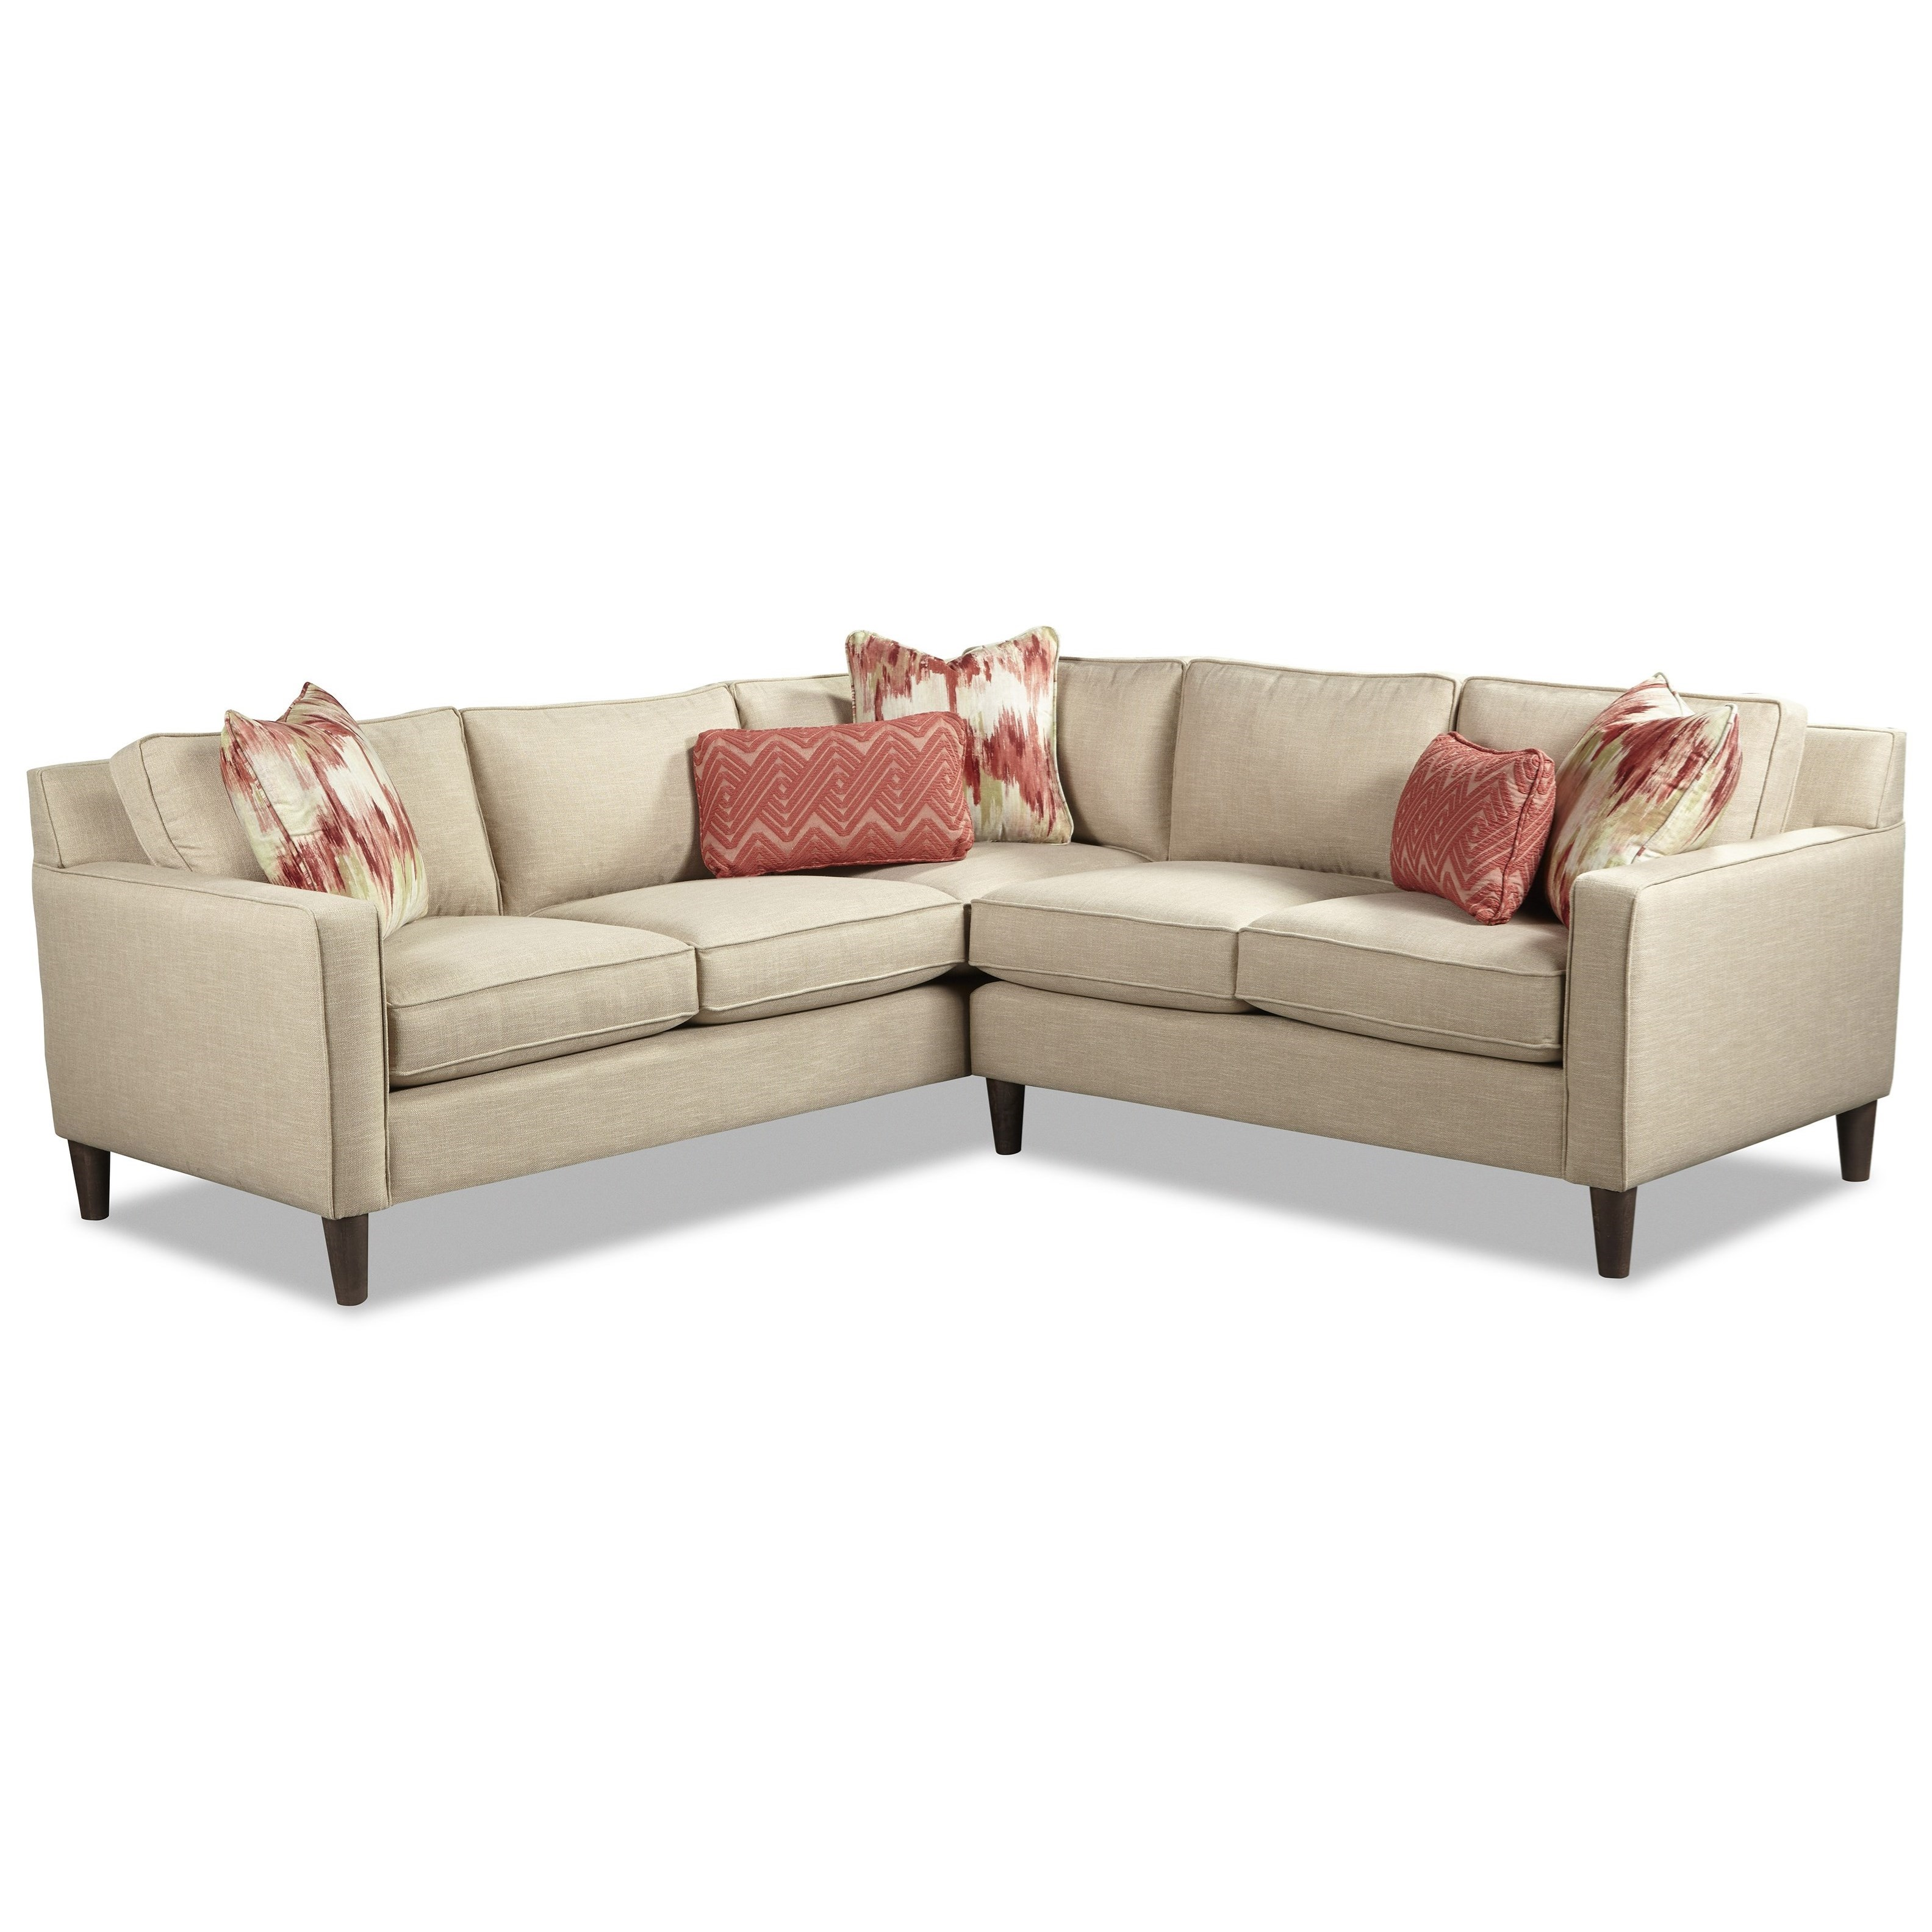 Rachael ray home by craftmaster r7605 contemporary corner for Sectional sofa jacksonville